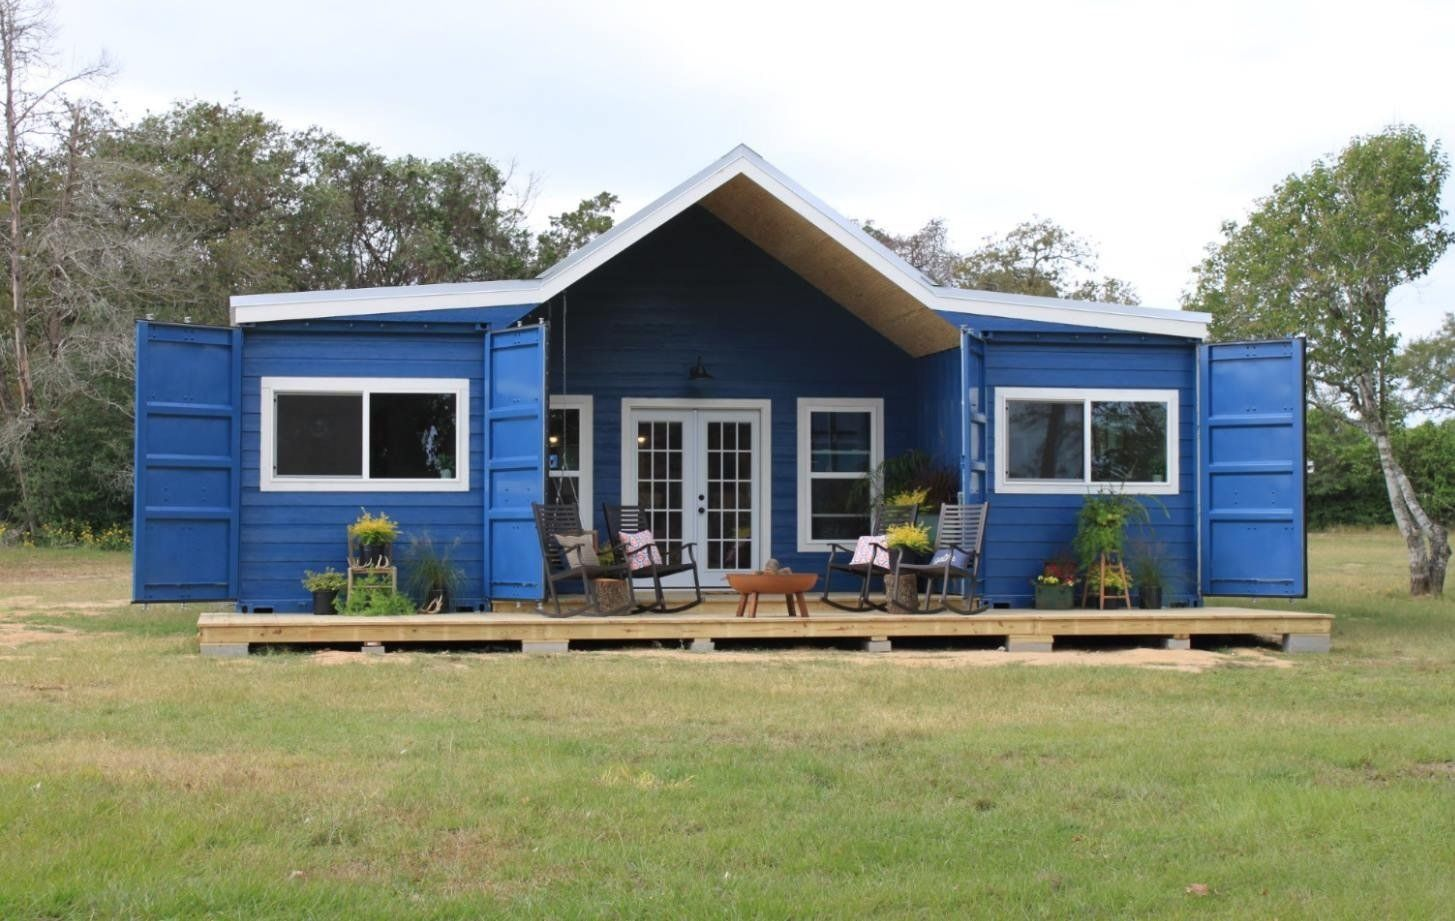 2 40' shipping container home plans